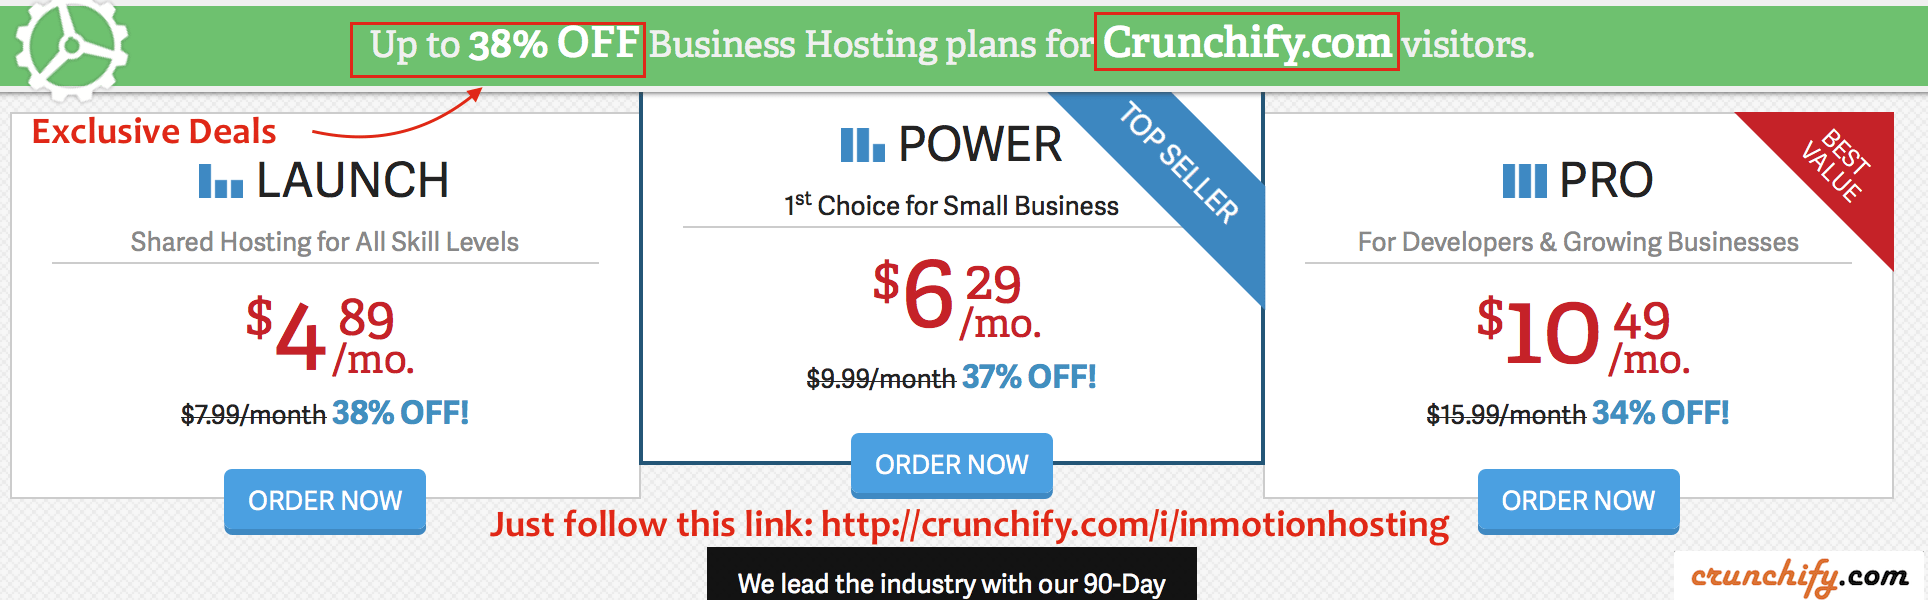 Inmotionhosting 38% off Web Hosting Plan - Crunchify Deals